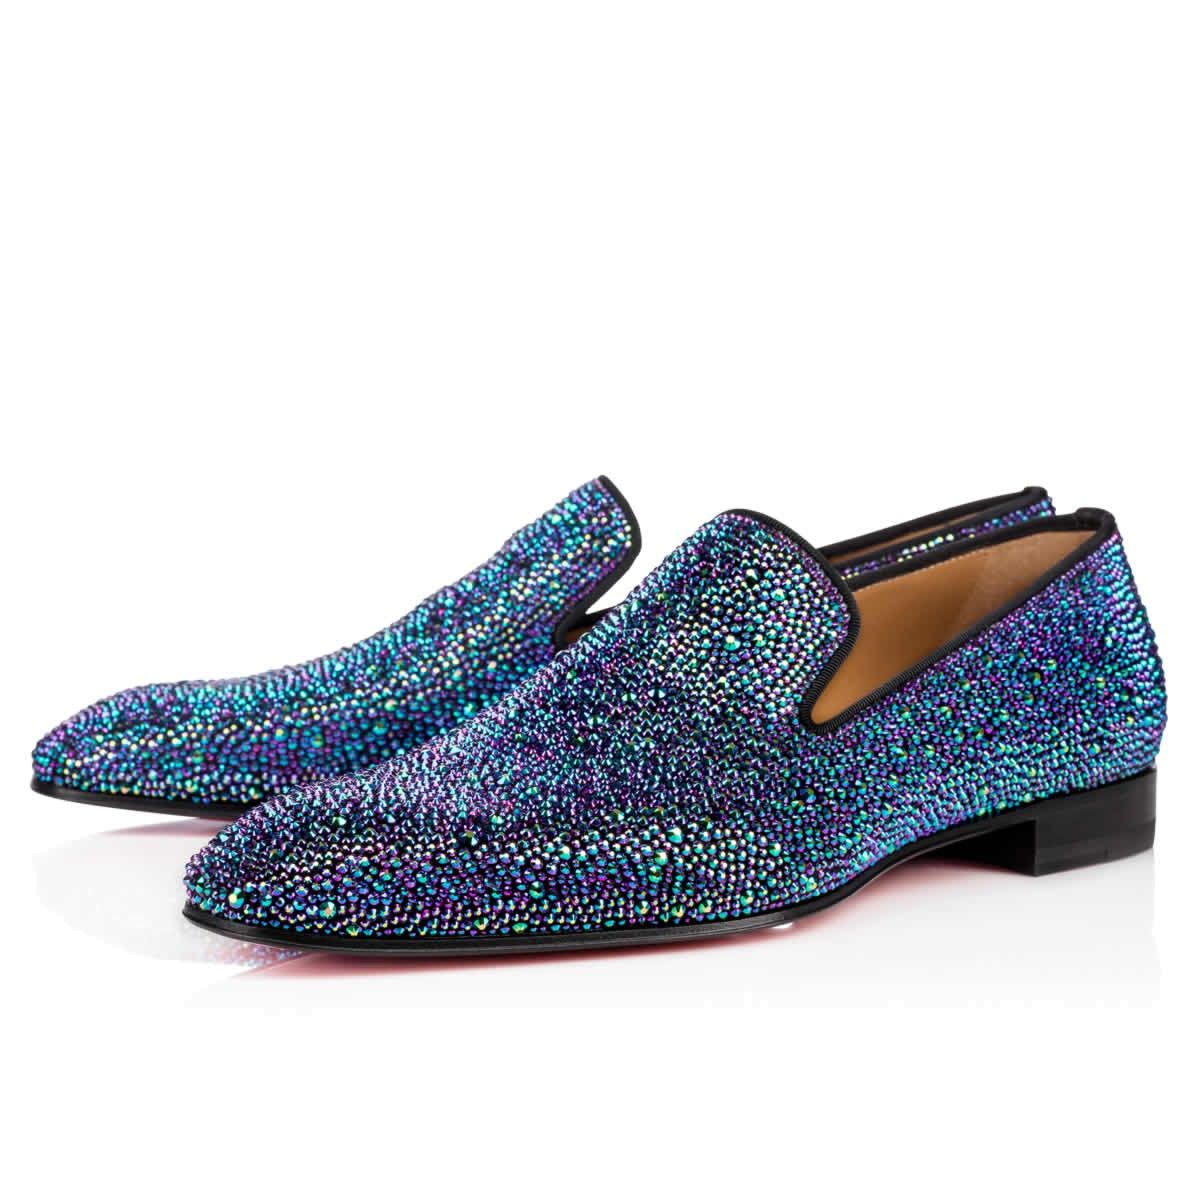 1f1f780d562 ... best price christian louboutin dandelion strass flat version green  strass men shoes christian louboutin. christianlouboutin